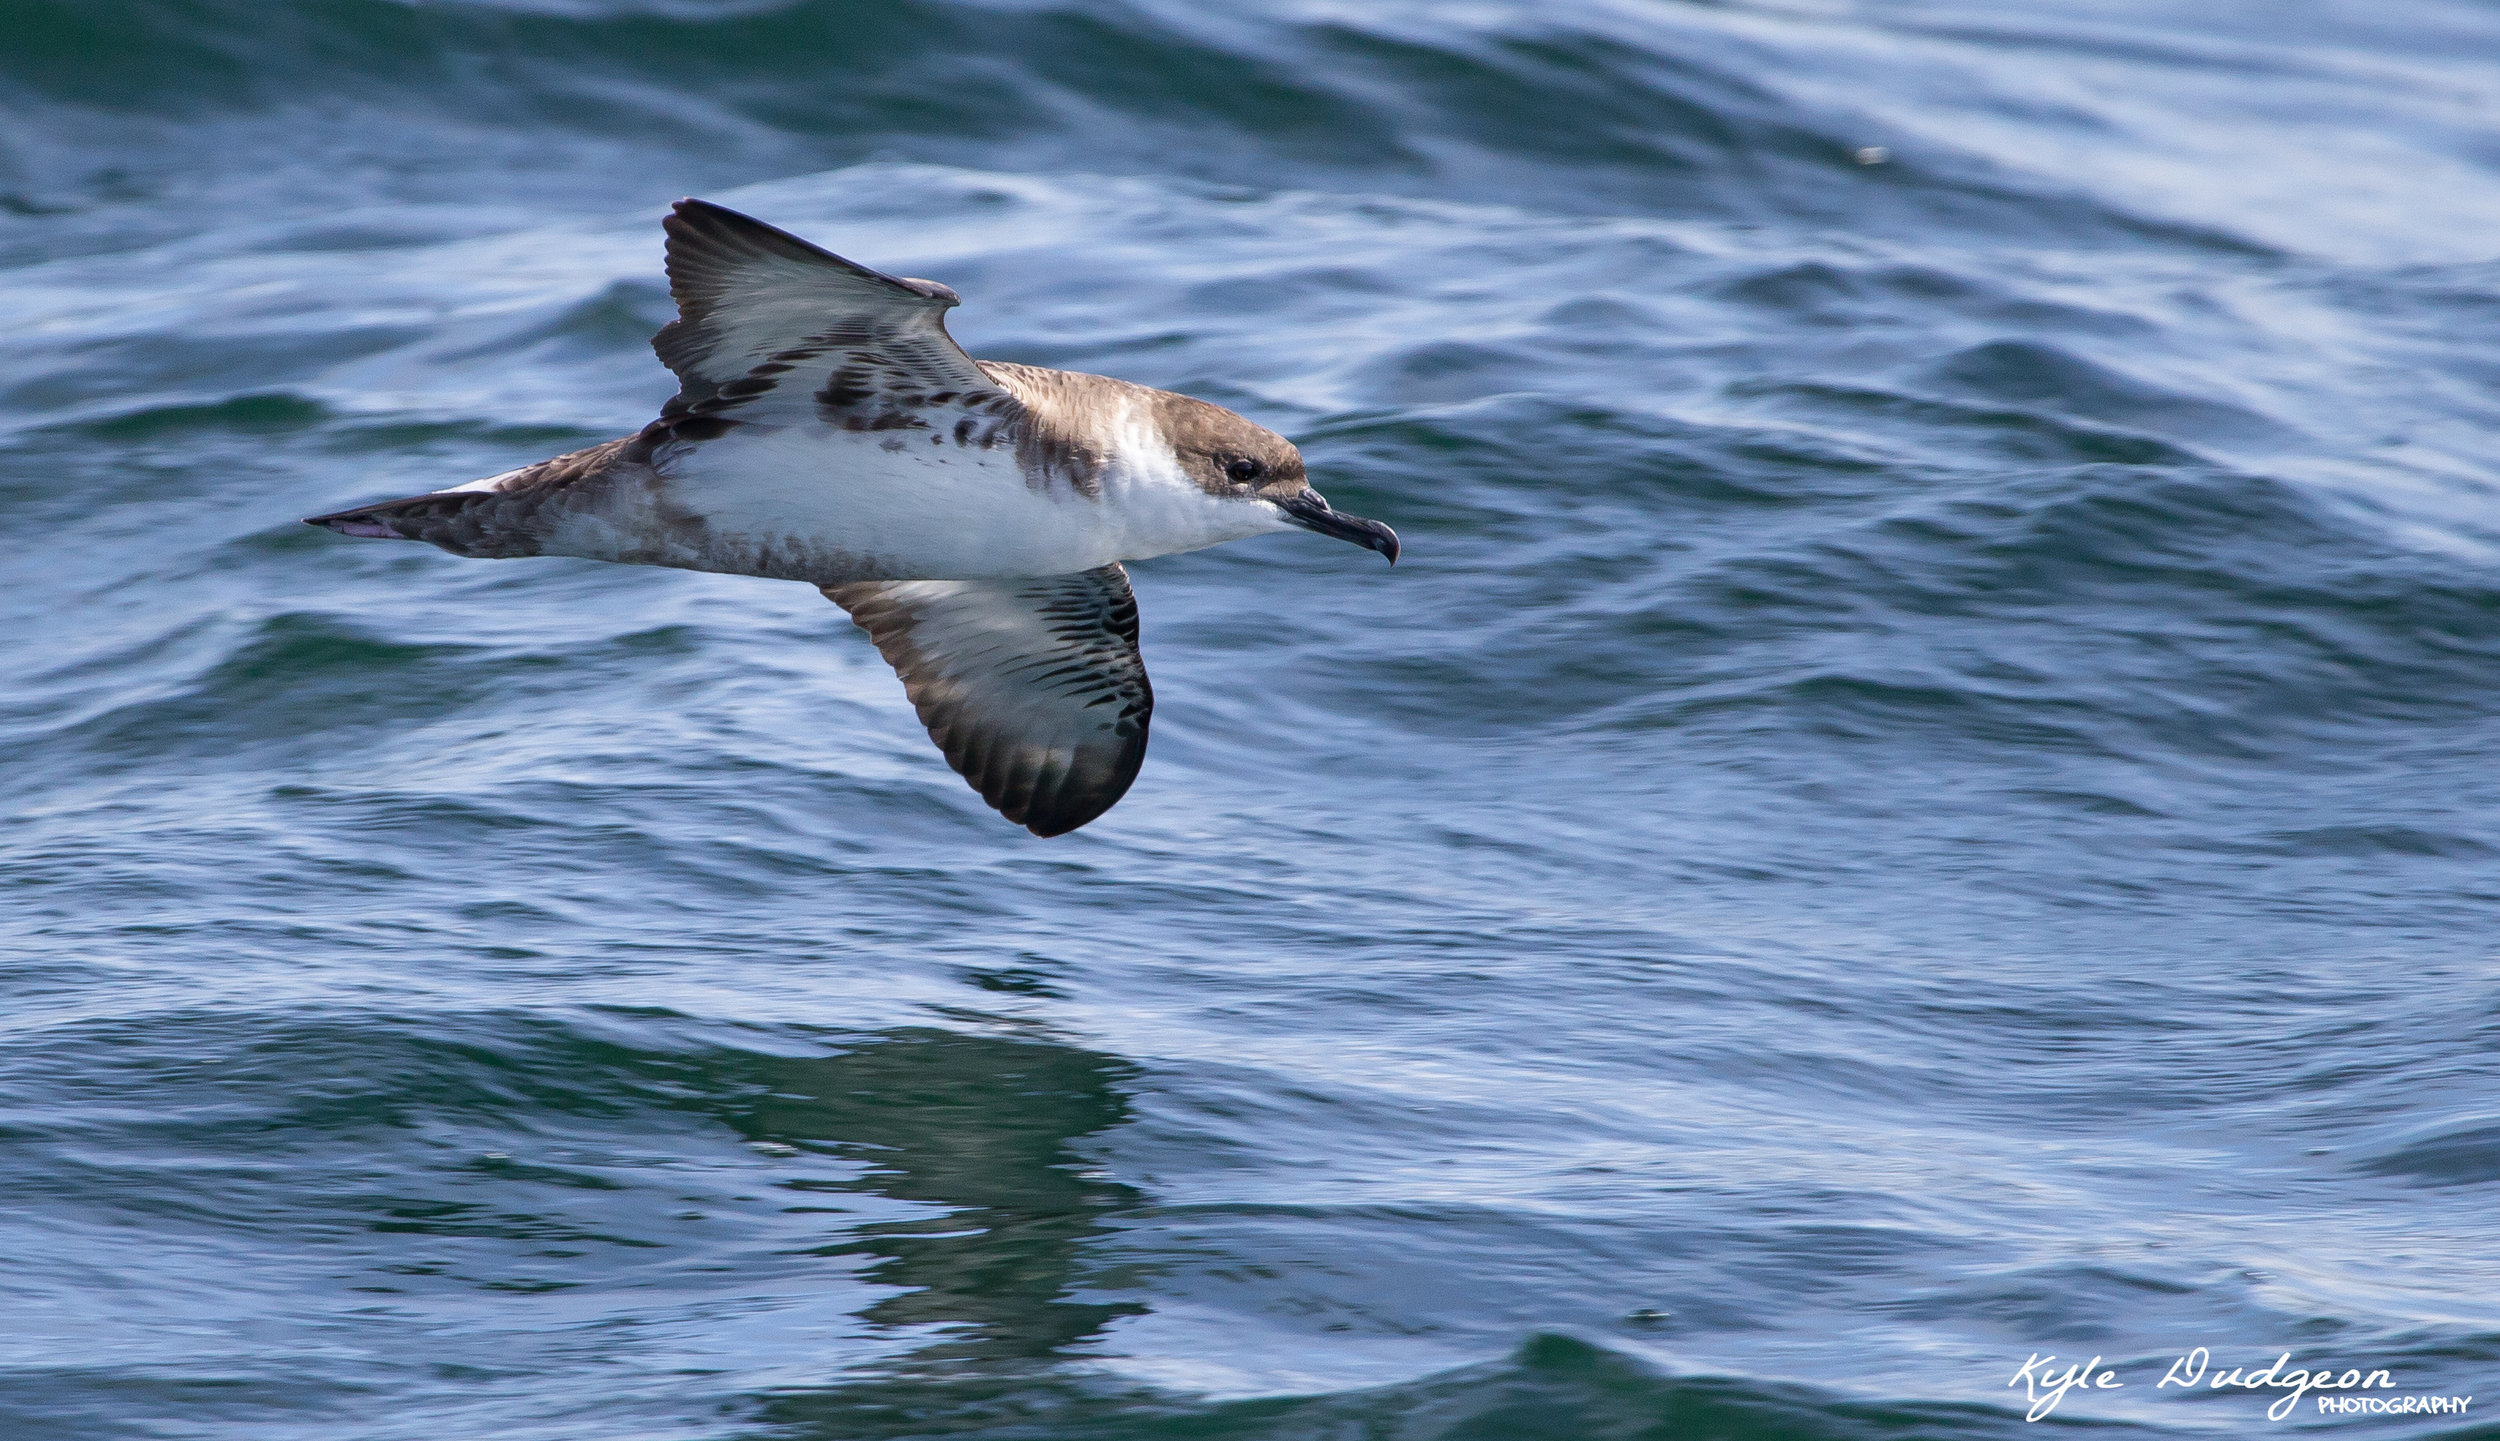 This is my favorite shot of the day. A great shearwater cutting through the air. 9/17/16.